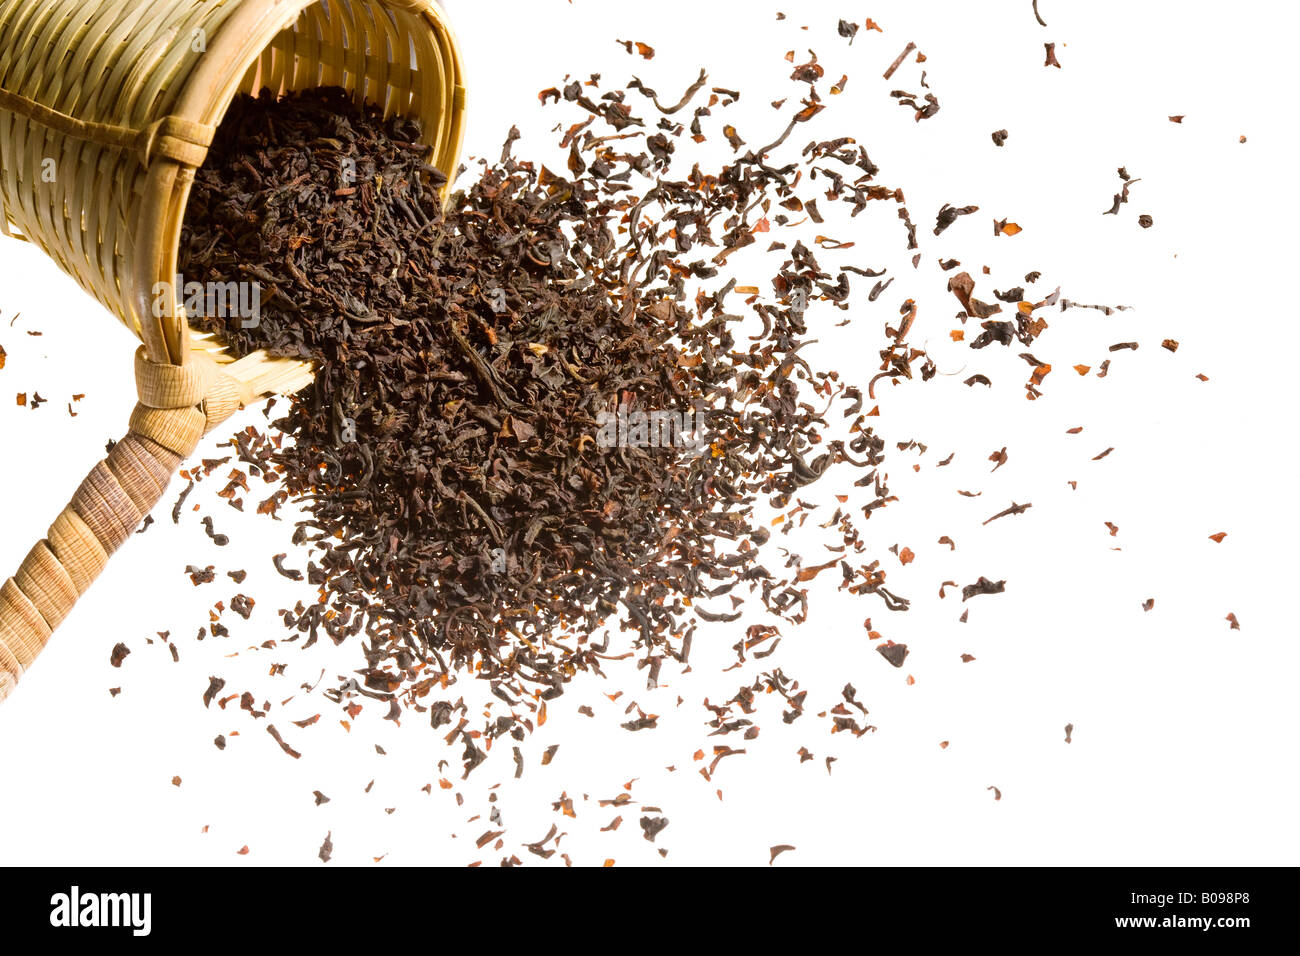 An overflowing heap of raw tea spilling out of a woven scooper. Stock Photo